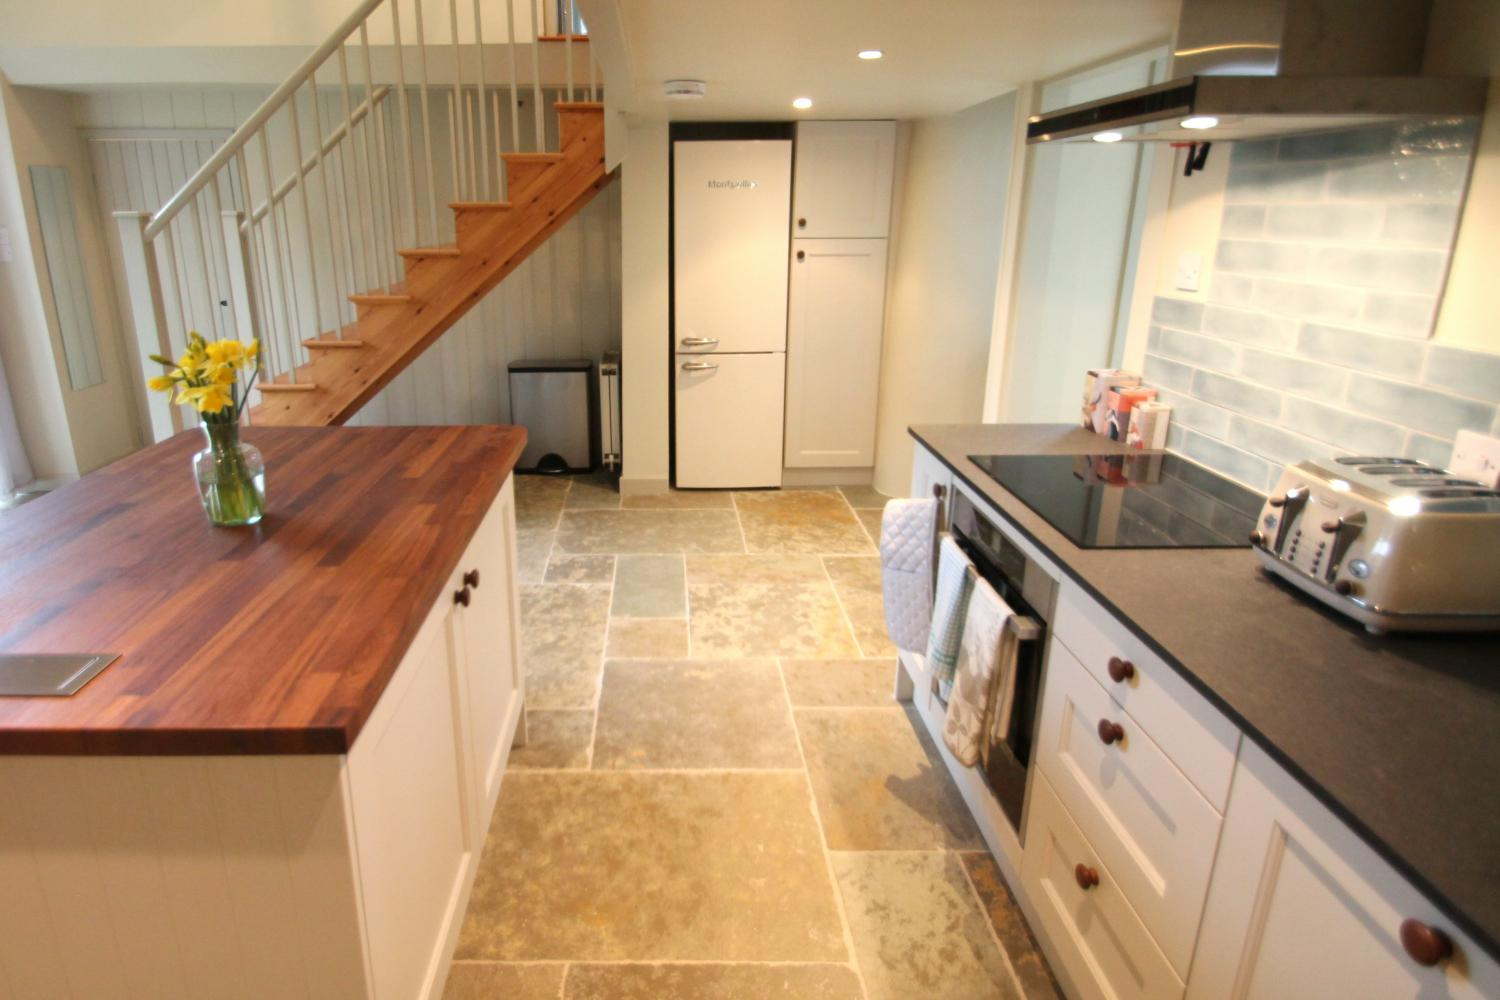 Wood and granite worktops, solid wood cupboards and brand new oven, hob and fridge freezer.